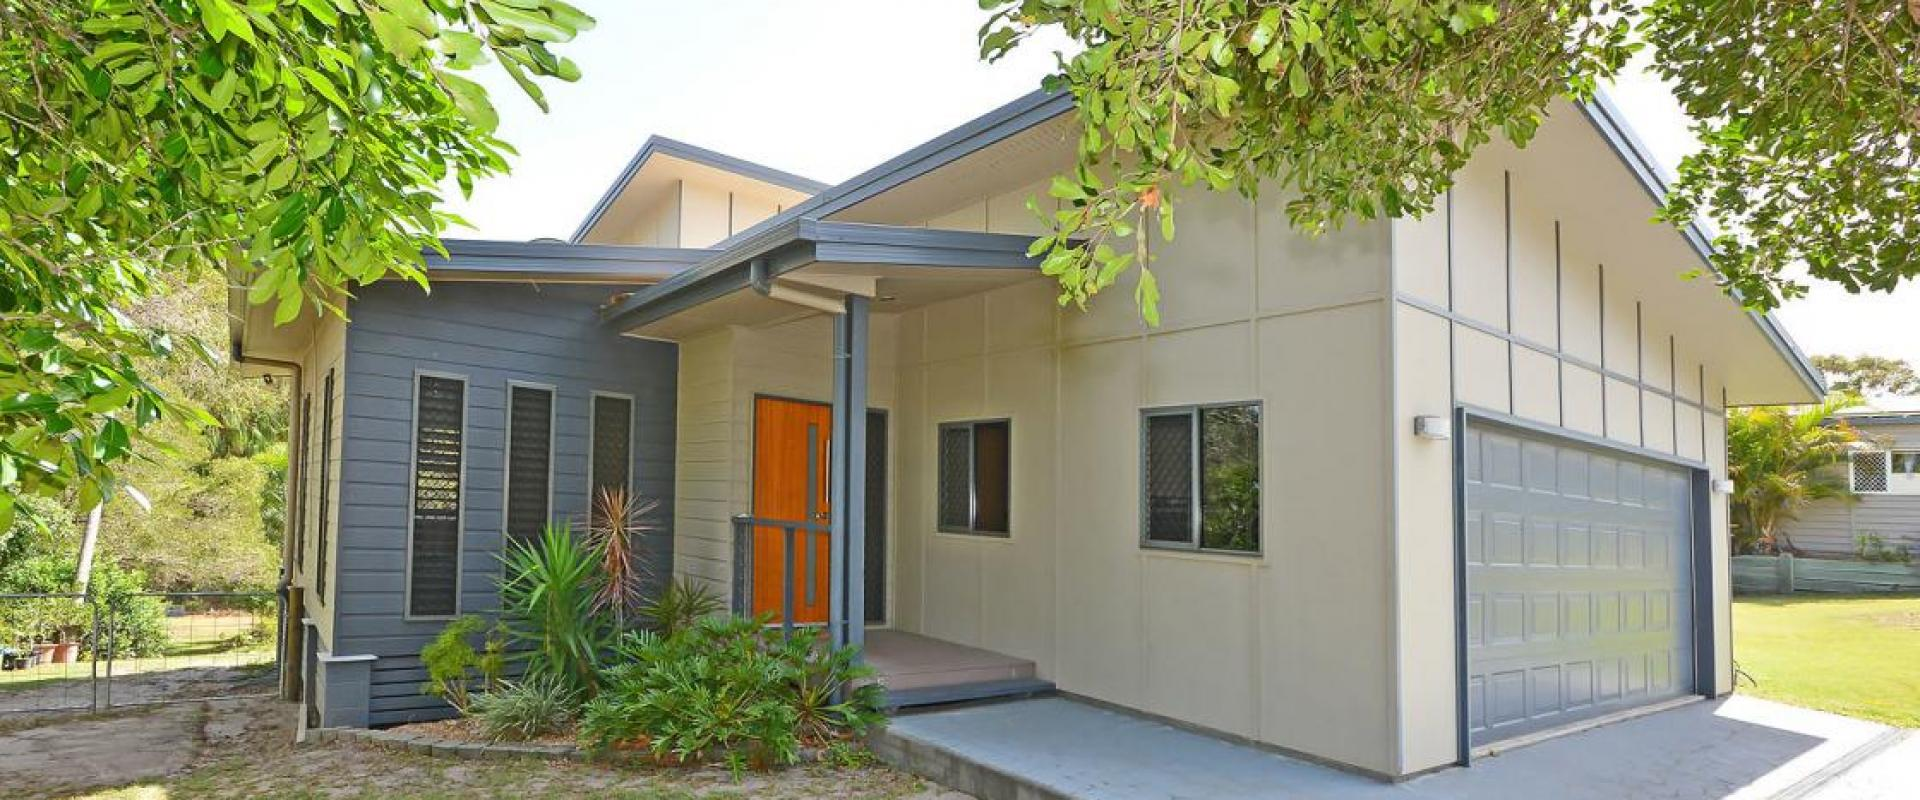 INDIVIDUAL FAMILY HOME WITH THE OPTION OF EITHER A SEPARATE ONE BEDROOM ANNEXE OR A LARGE DOUBLE SHED, SWIMMING POOL, LAND SIZE 2830 SQM